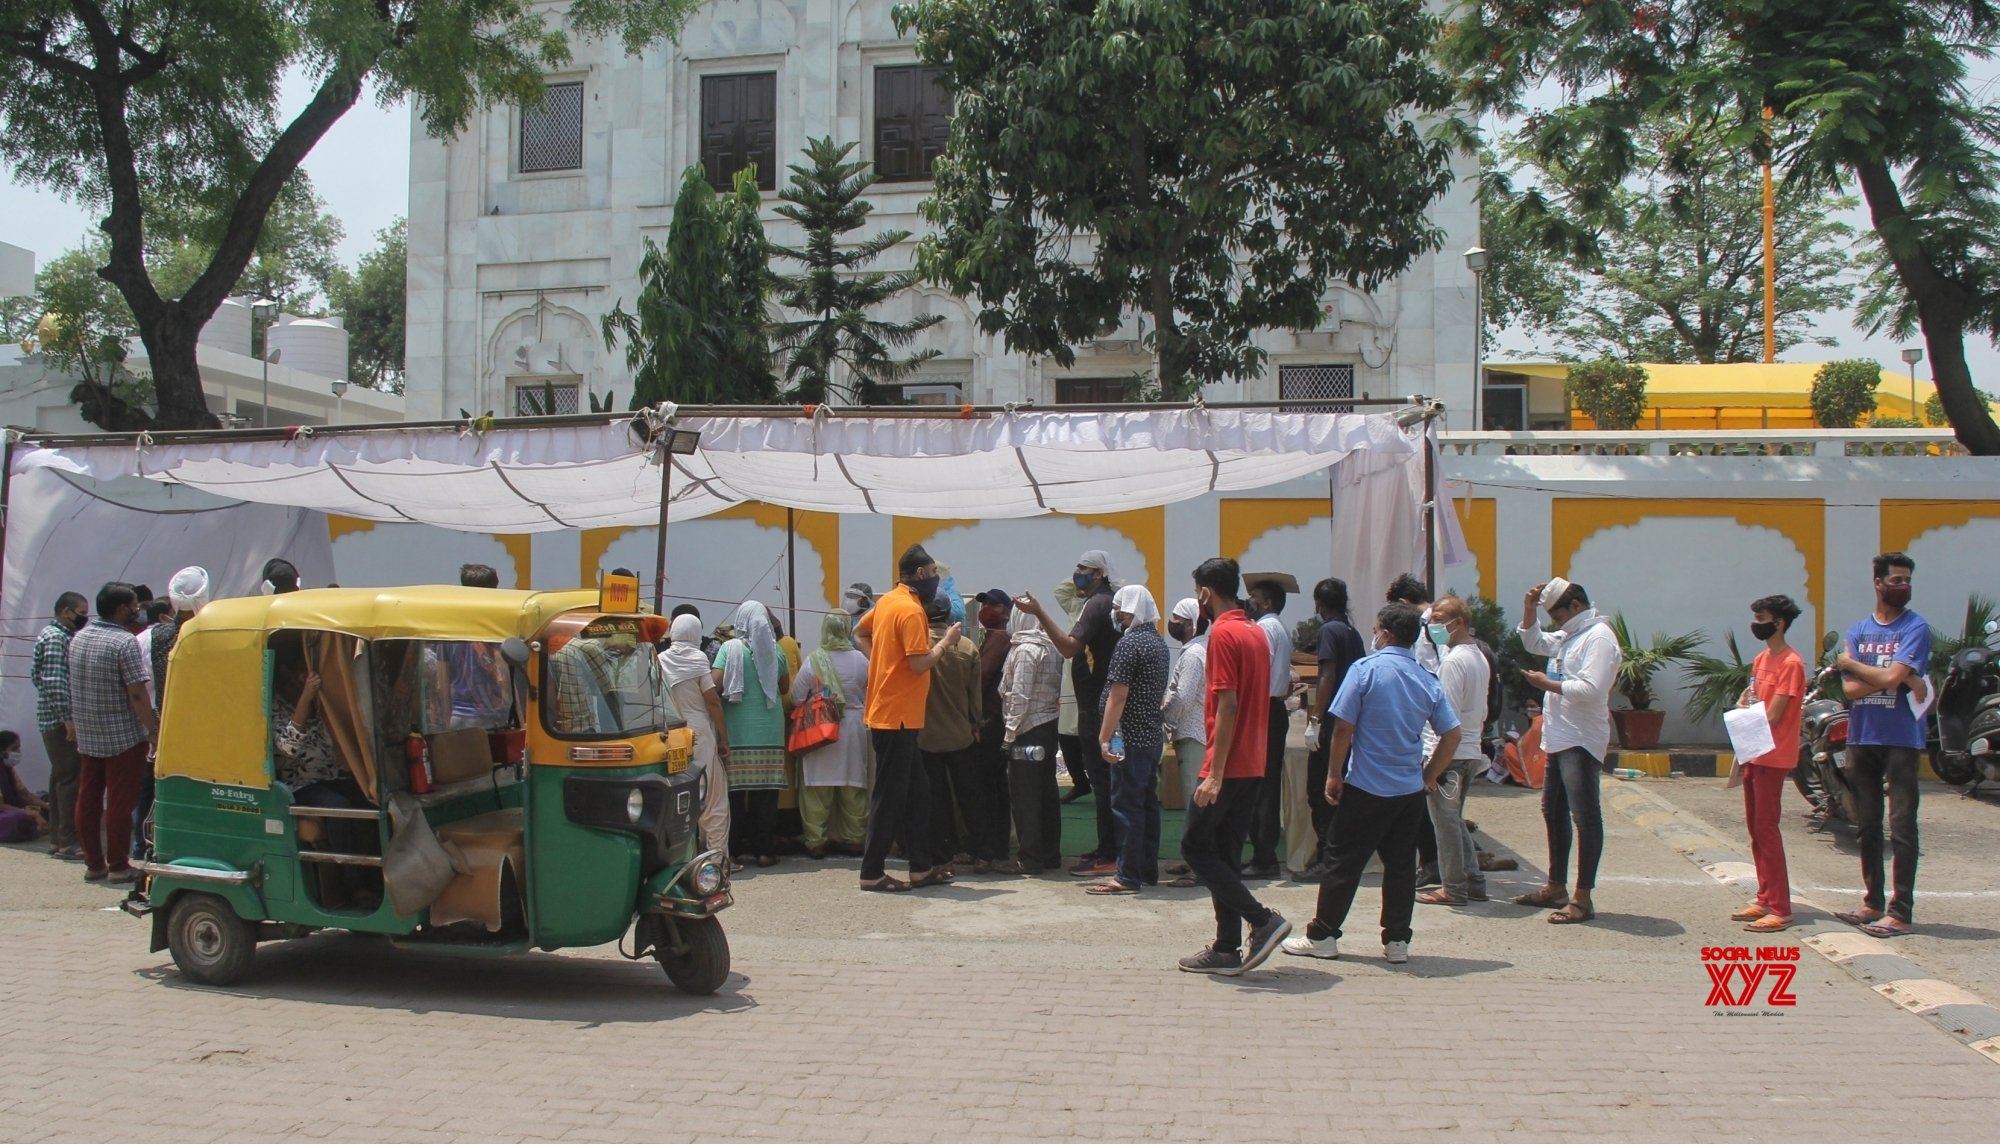 Indian-American bodies mobilise resources for Covid relief in India